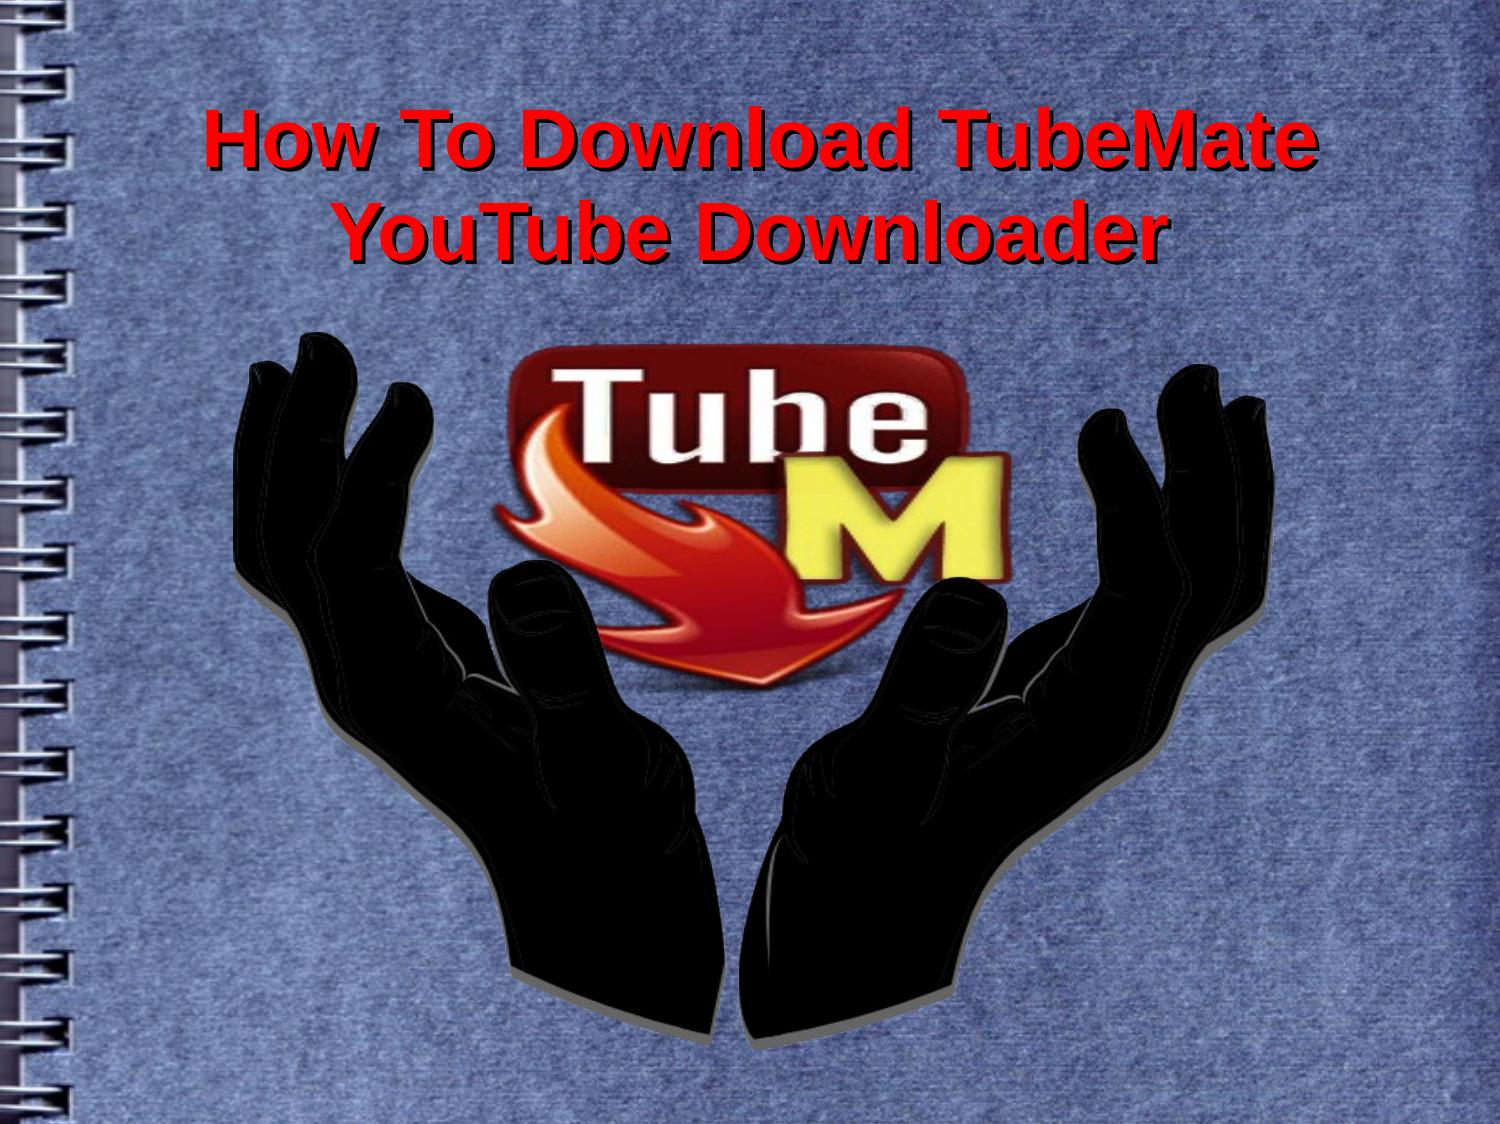 How To Download TubeMate Youtube Downloader by Steve R